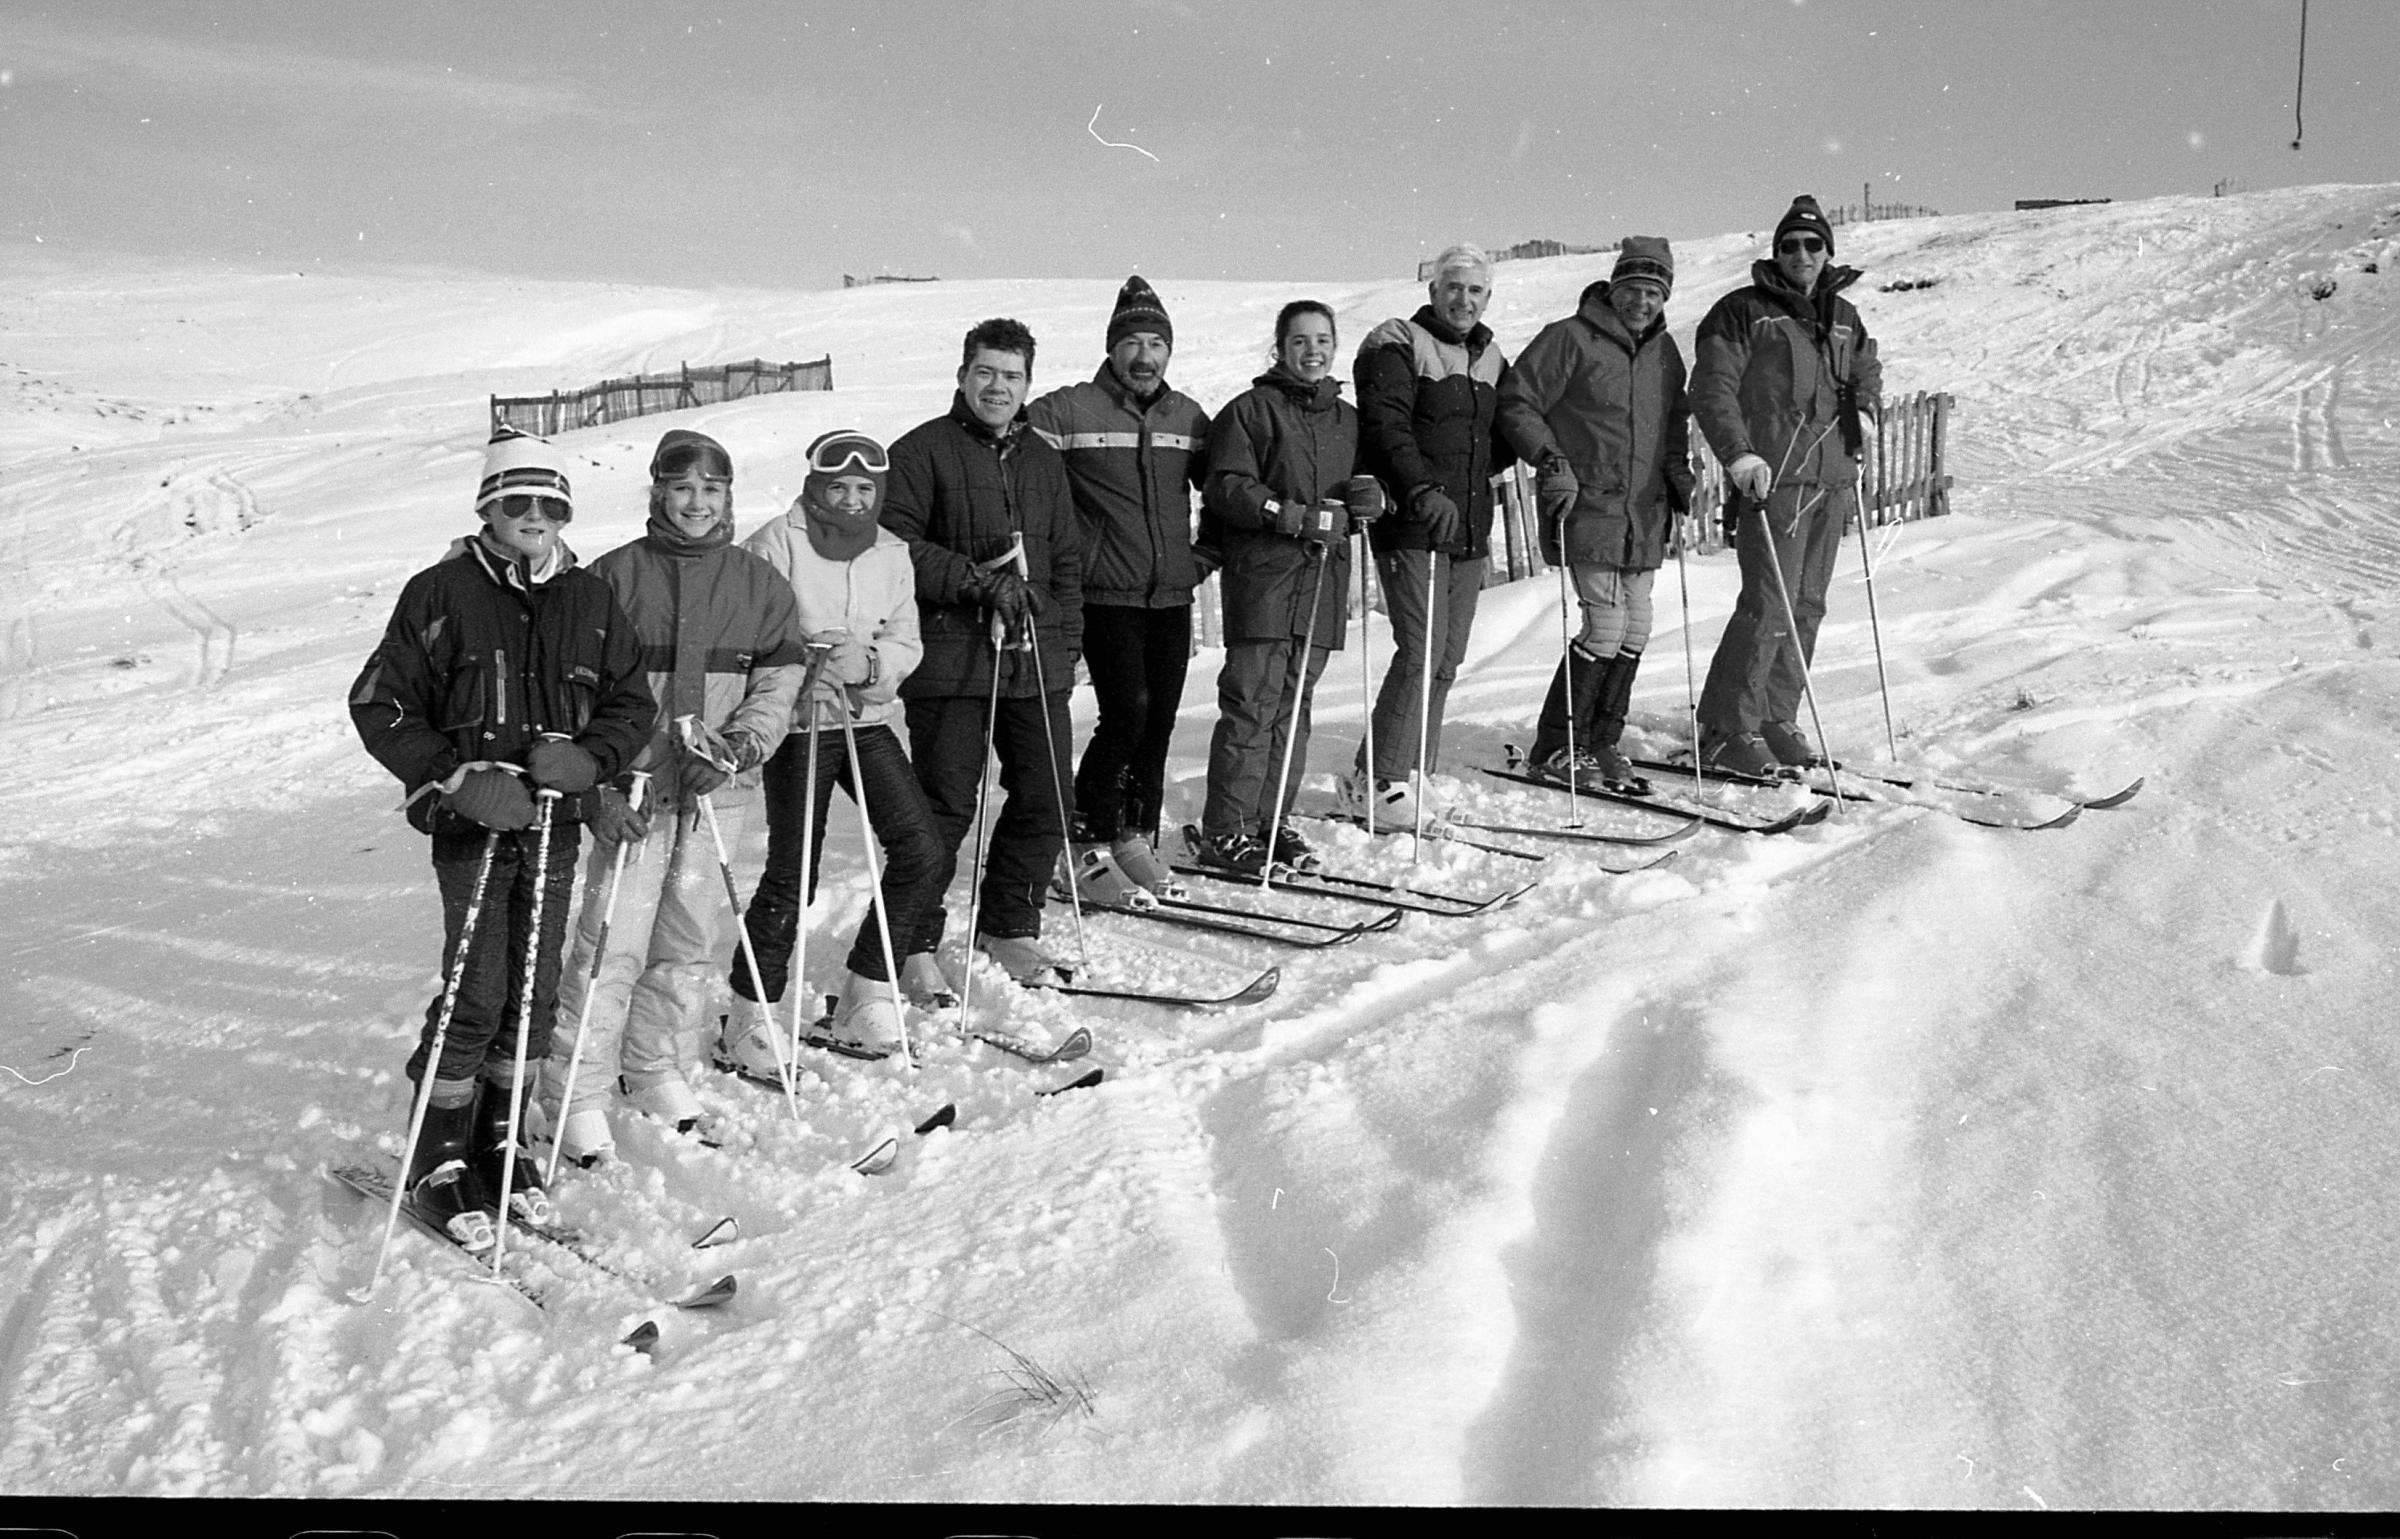 Skiers take to the slopes at Yad Moss, Alston in 1993. Do you recognise any faces?